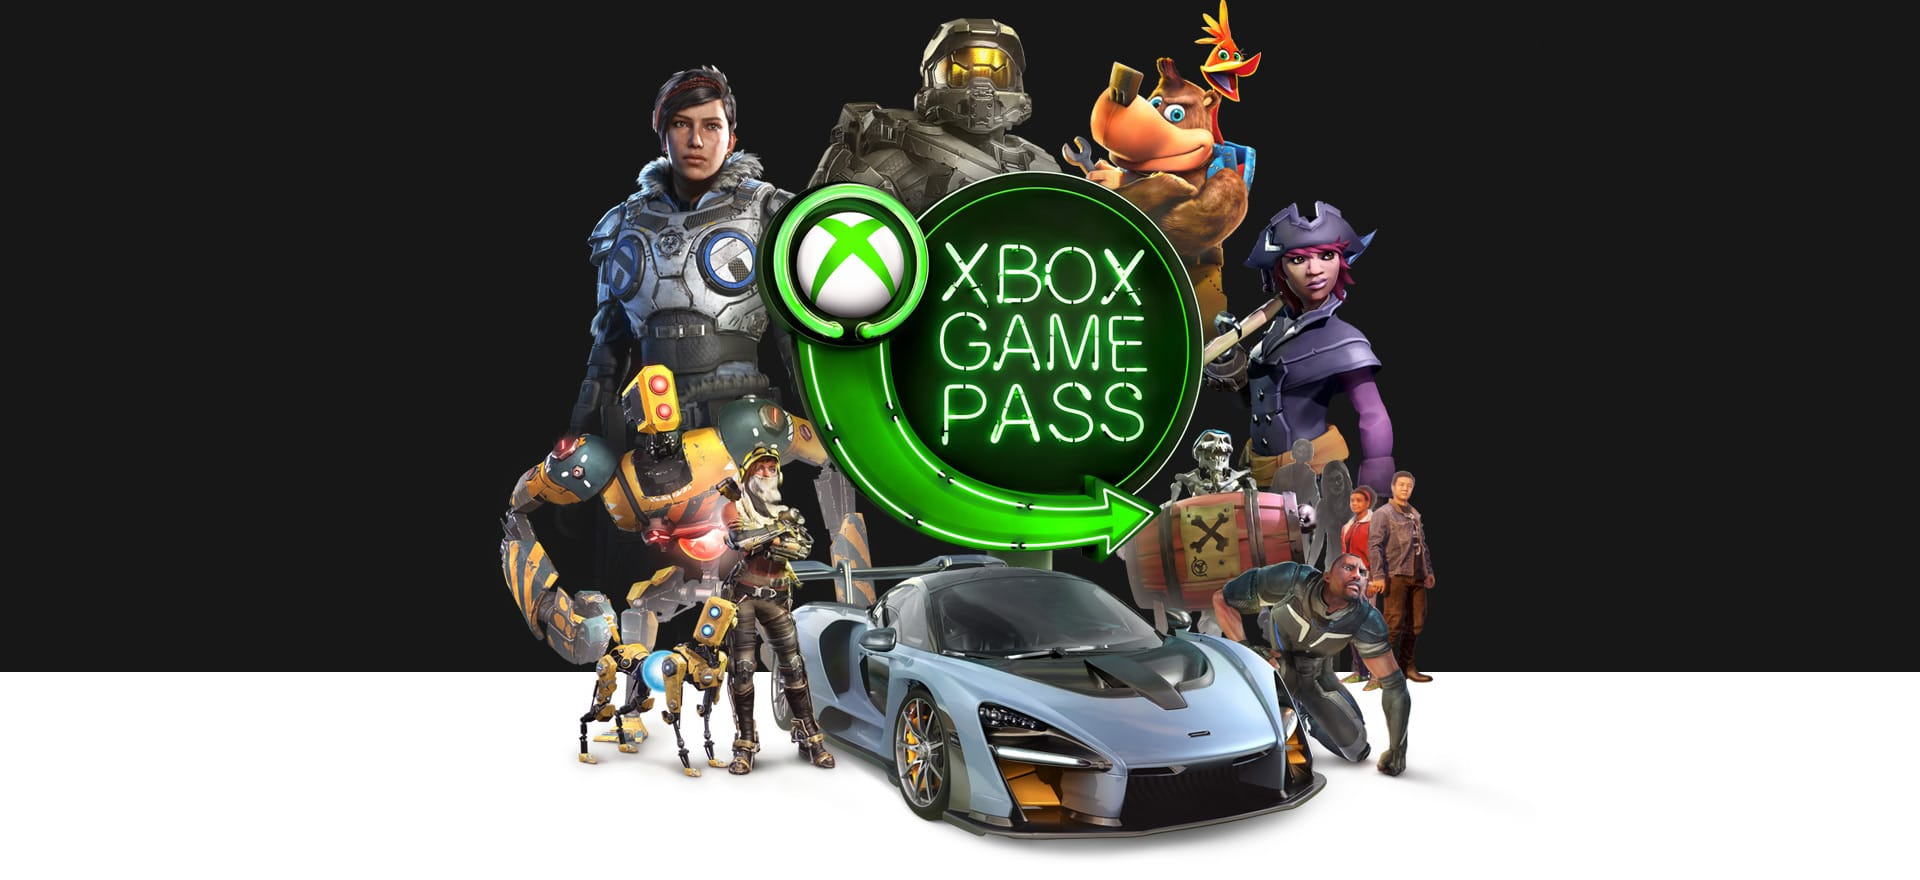 Collage of game characters surrounding the Game Pass neon sign.